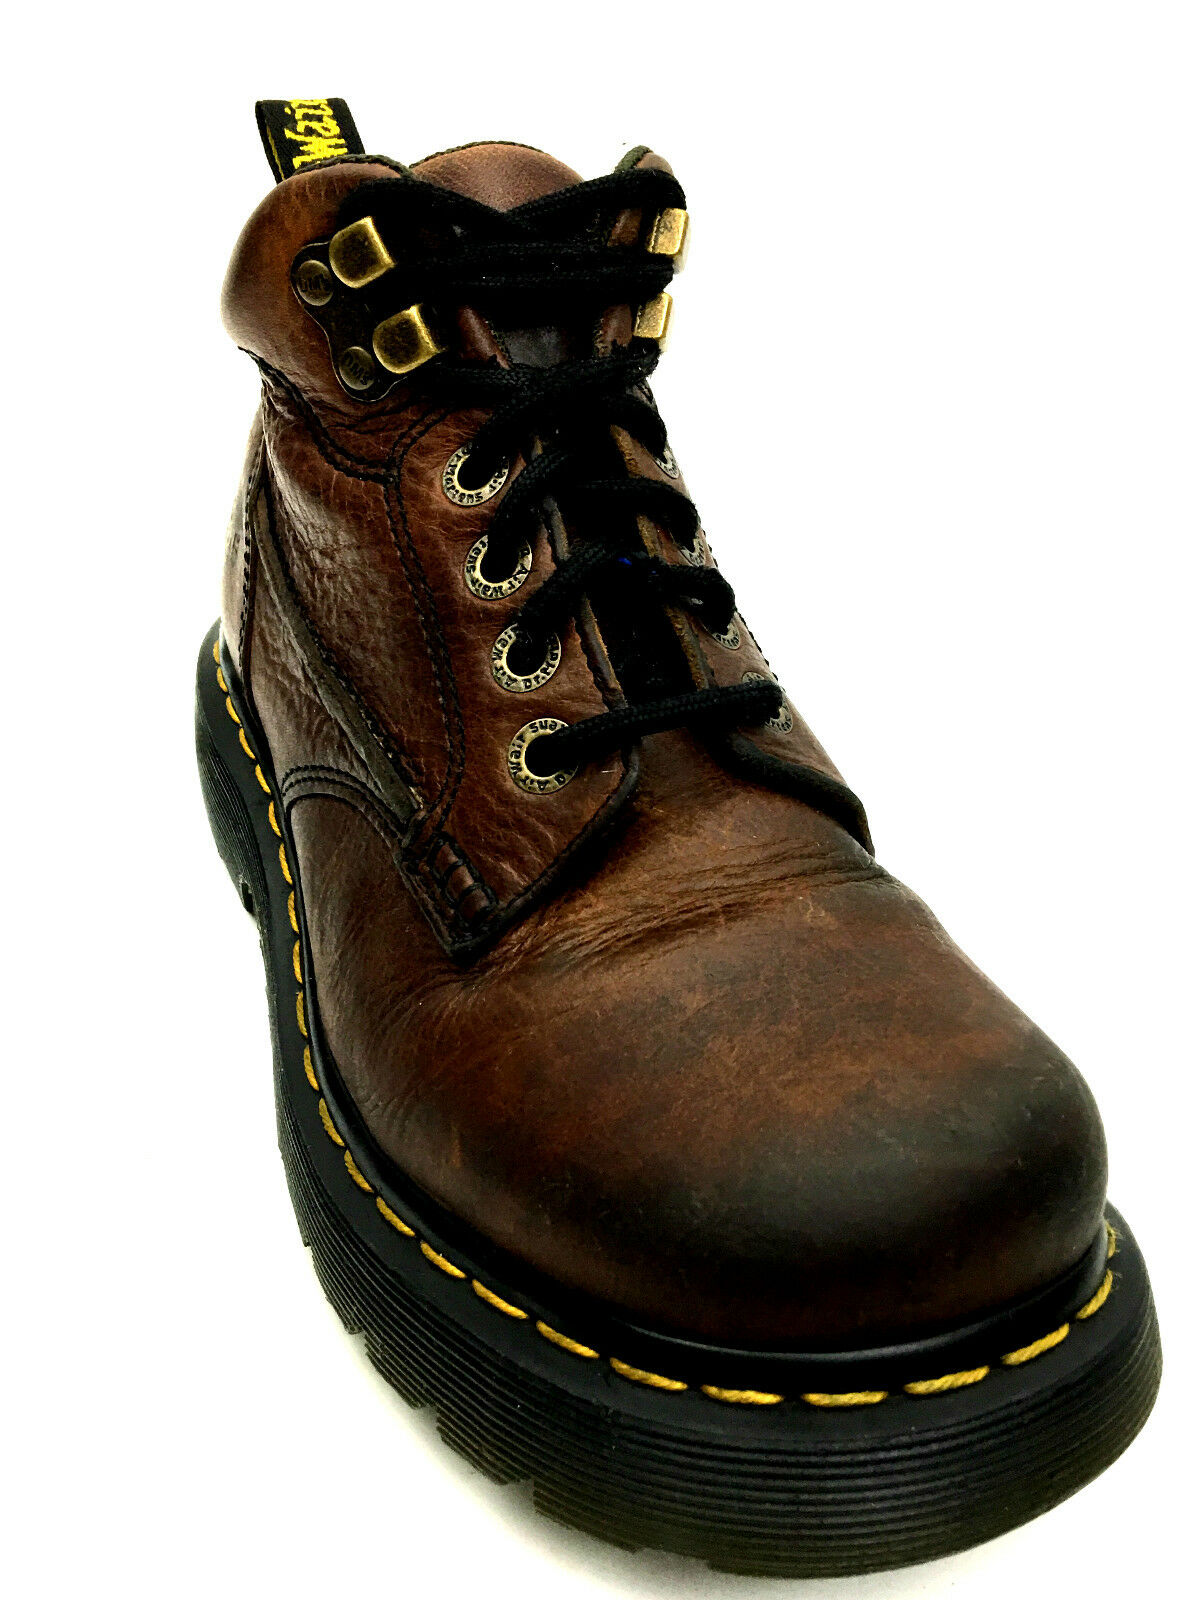 Dr. Martens Men's Made in UK Ankle Boot Brown USA.5 UK. USA 6 EUR.38